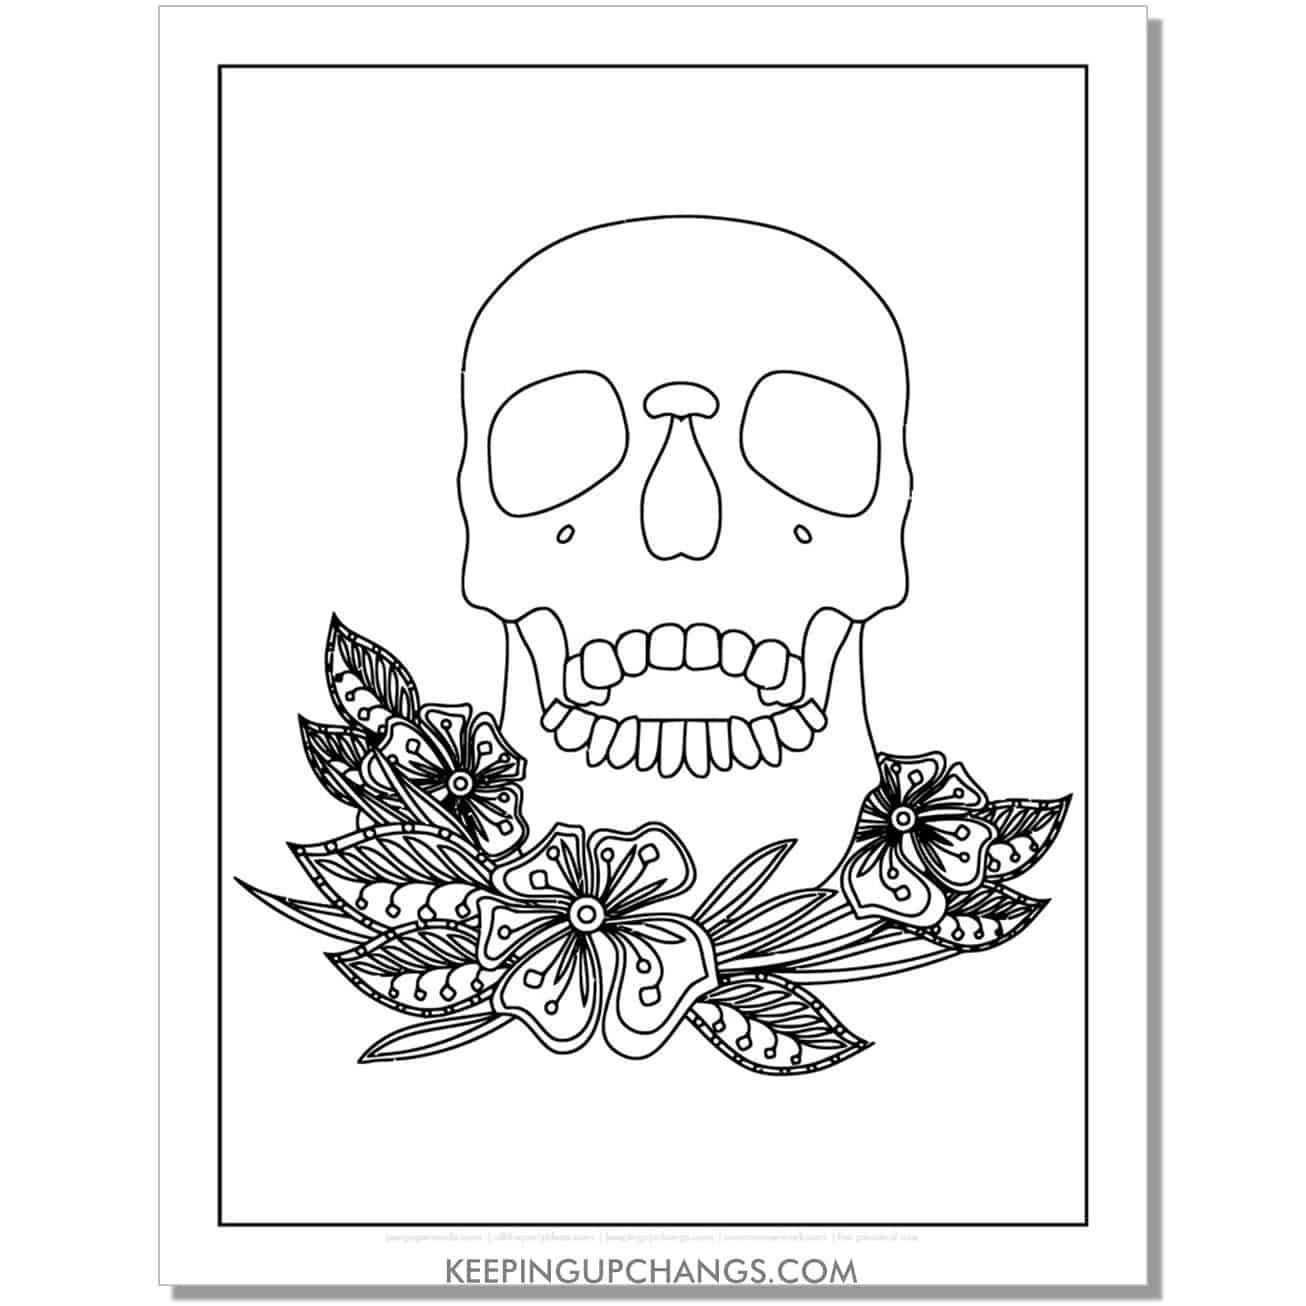 skull resting on flowers coloring page.